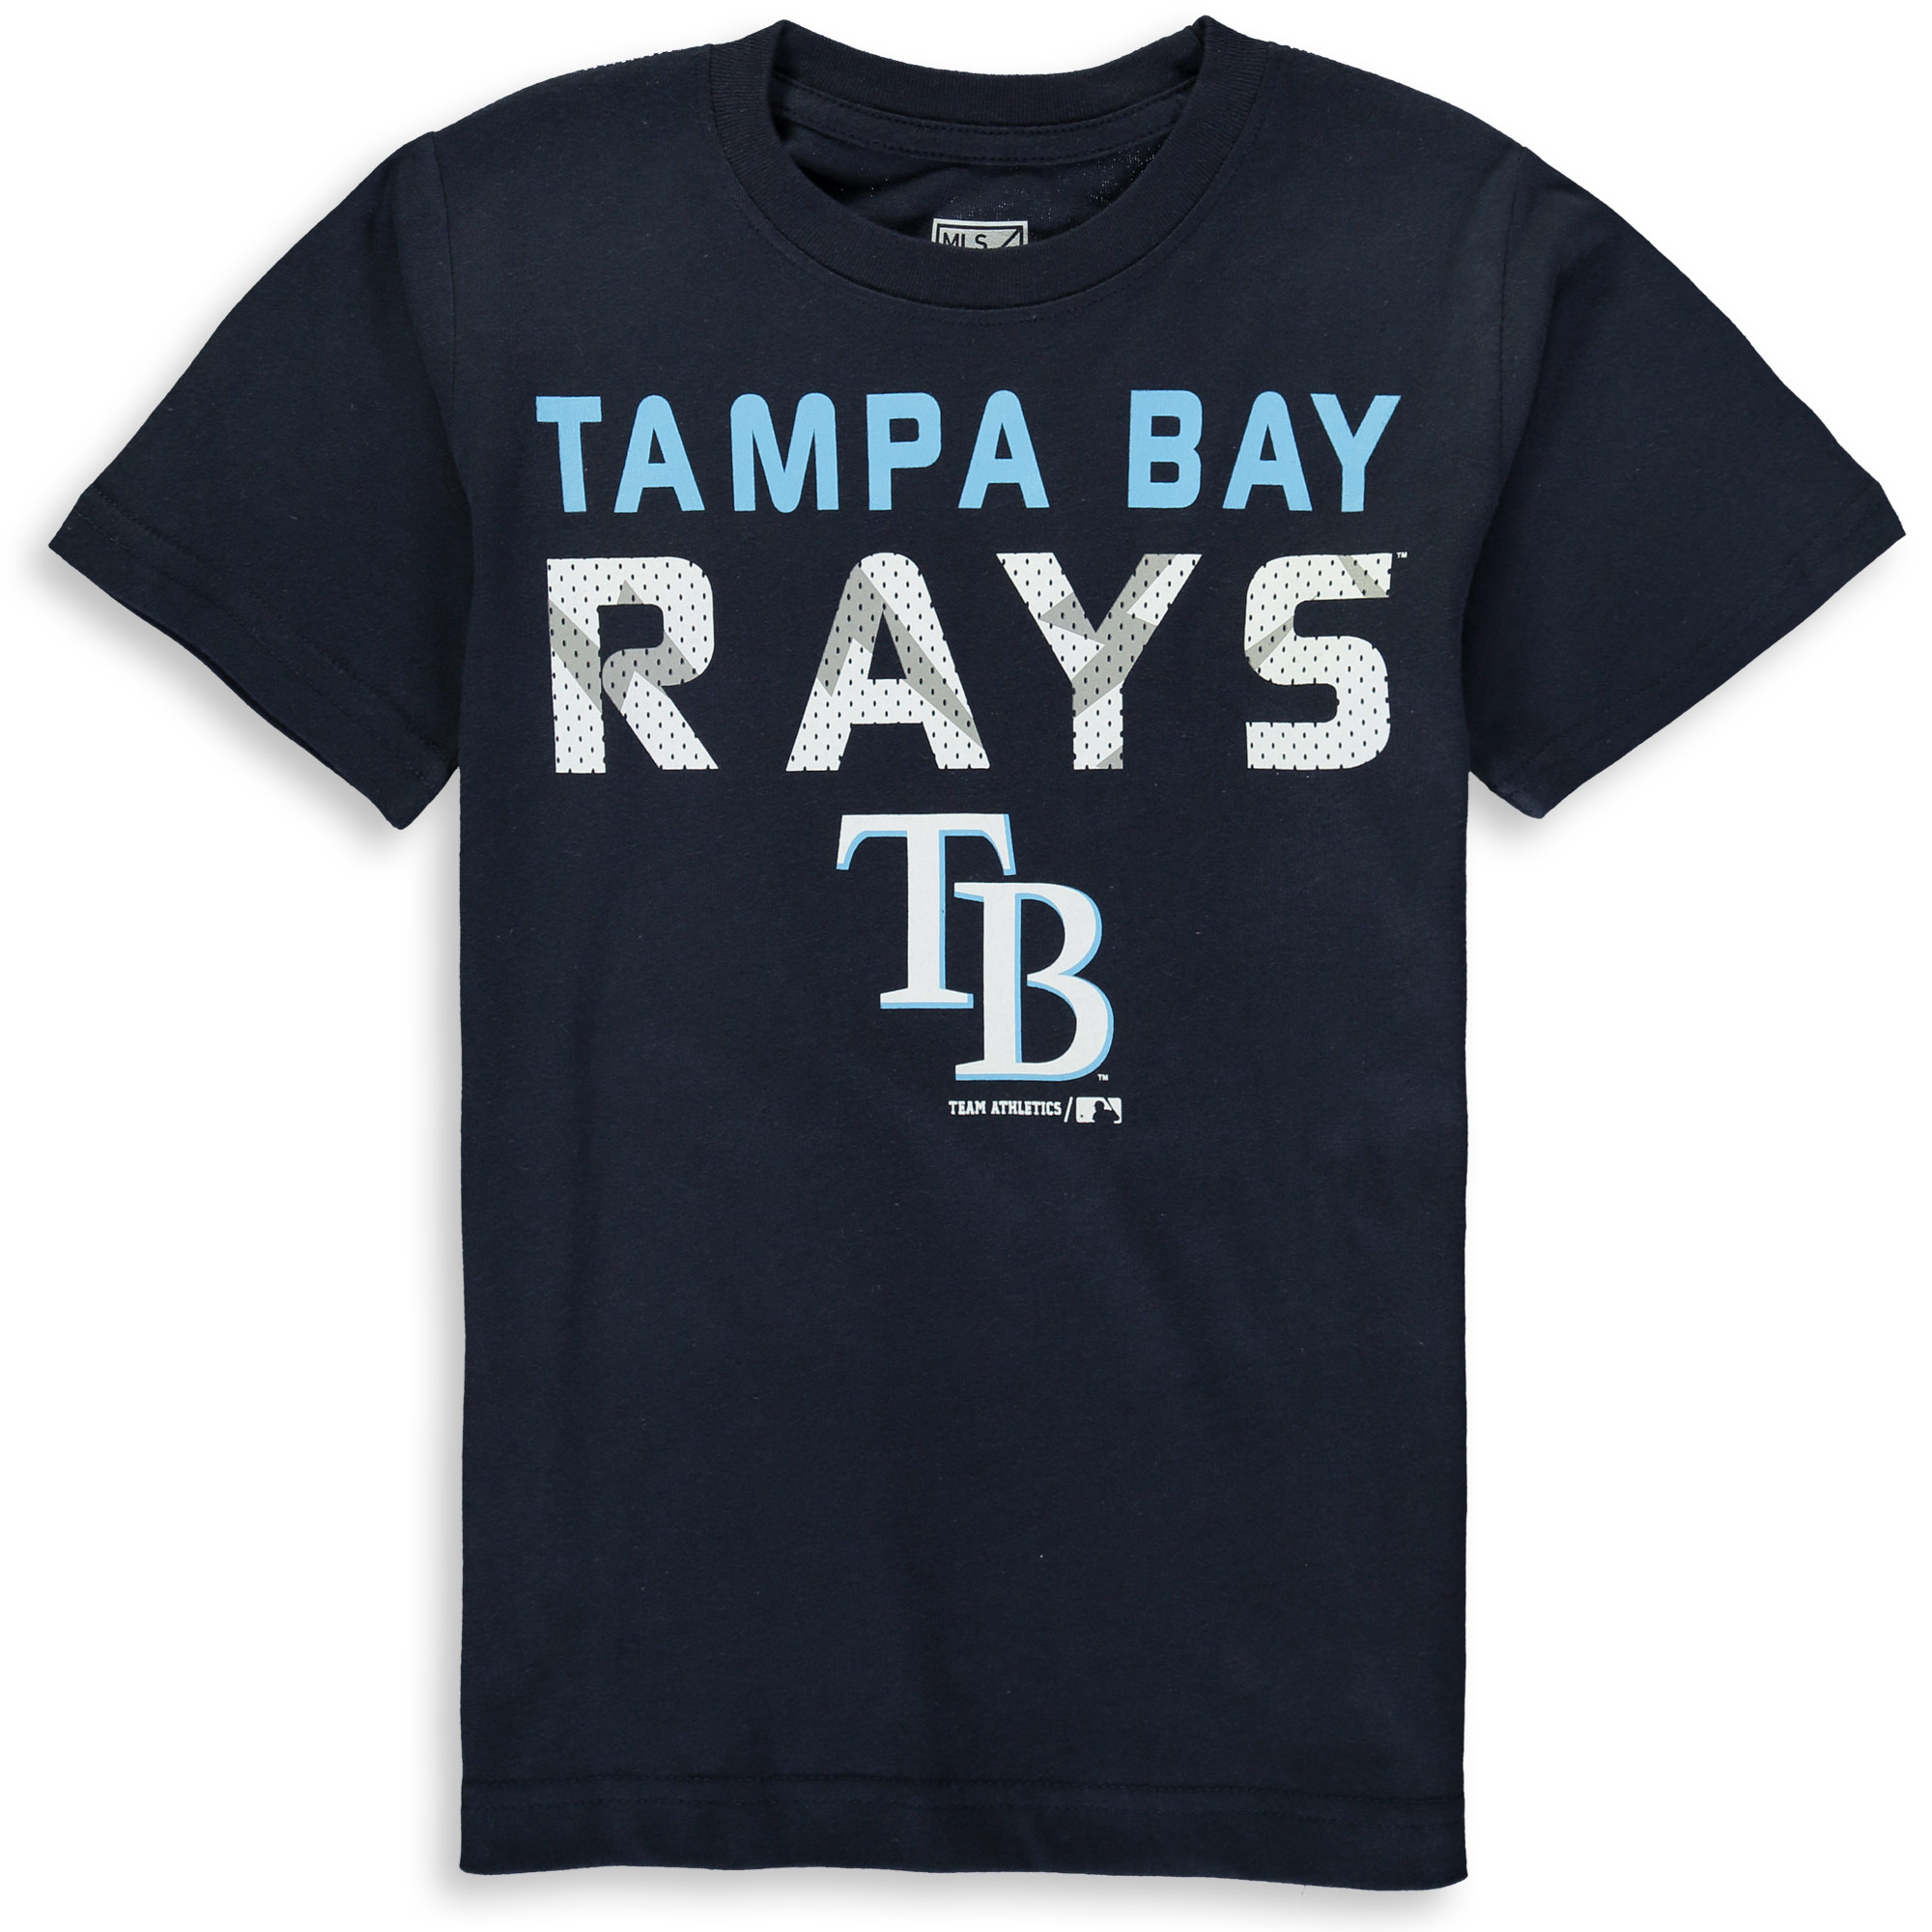 MLB Tampa Bay RAYS TEE Short Sleeve Boys Team Name and LOGO 100% Cotton Team Color 4-18